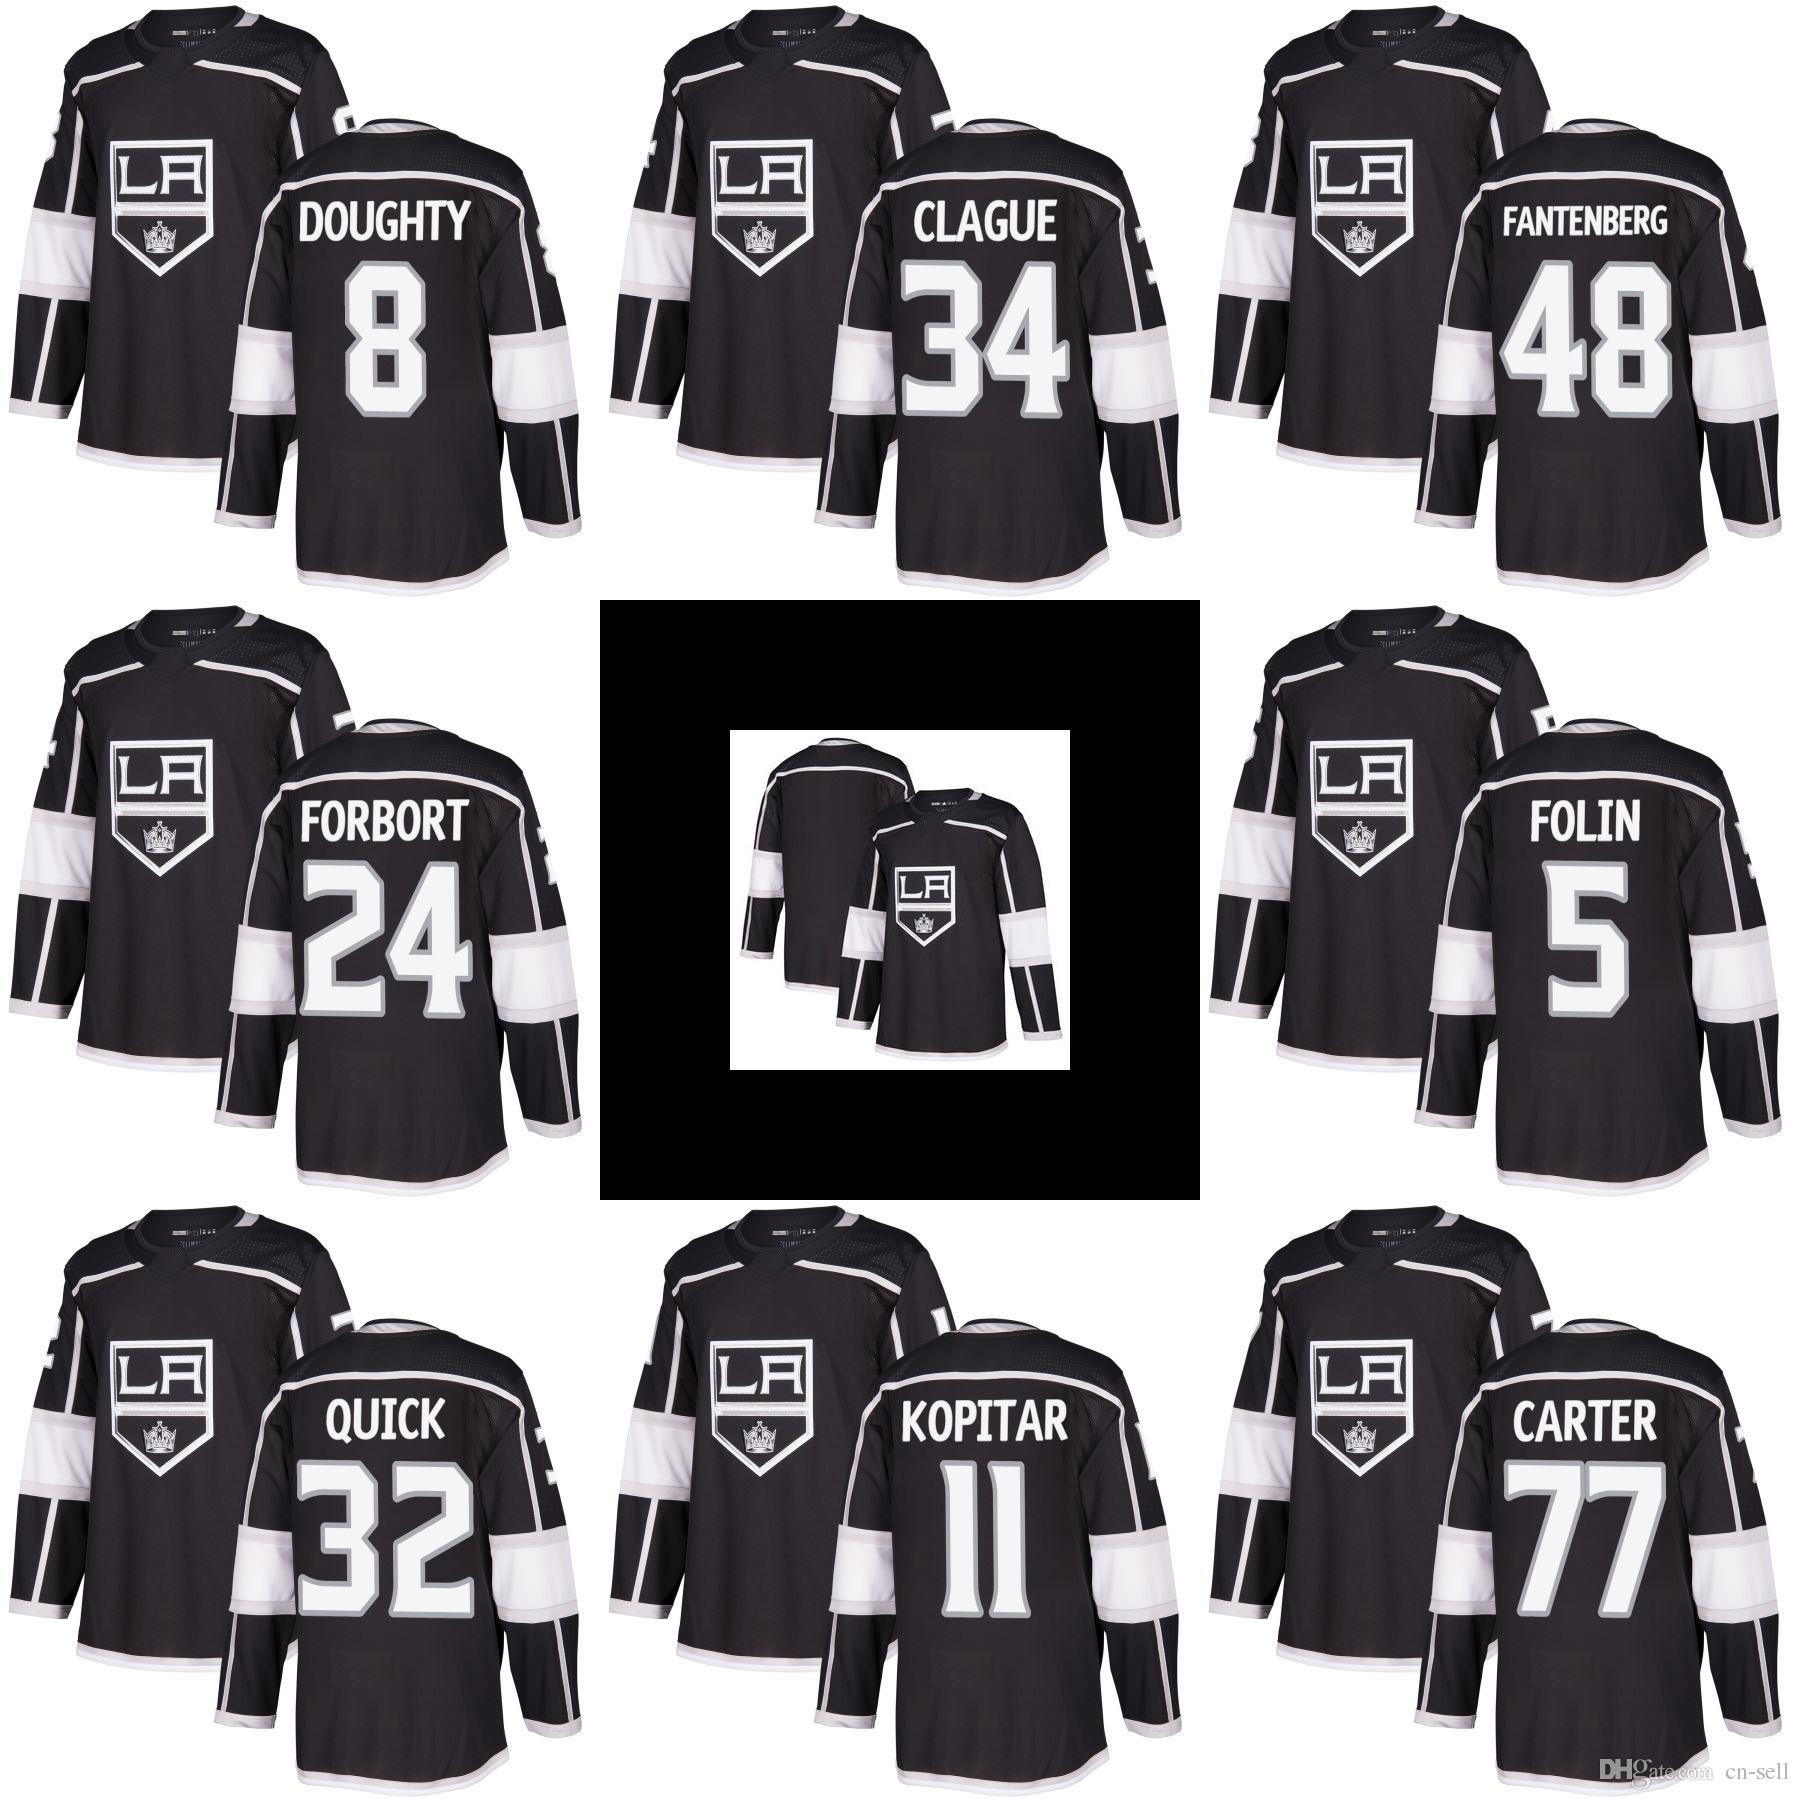 918829b18 2019 New Jonathan Quick 8 Drew Doughty 77 Jeff Carter Anze Kopitar Marian  Gaborik Mens Home Black LA Kings Hockey Jerseys Stitched A Patch From Cn  Sell, ...